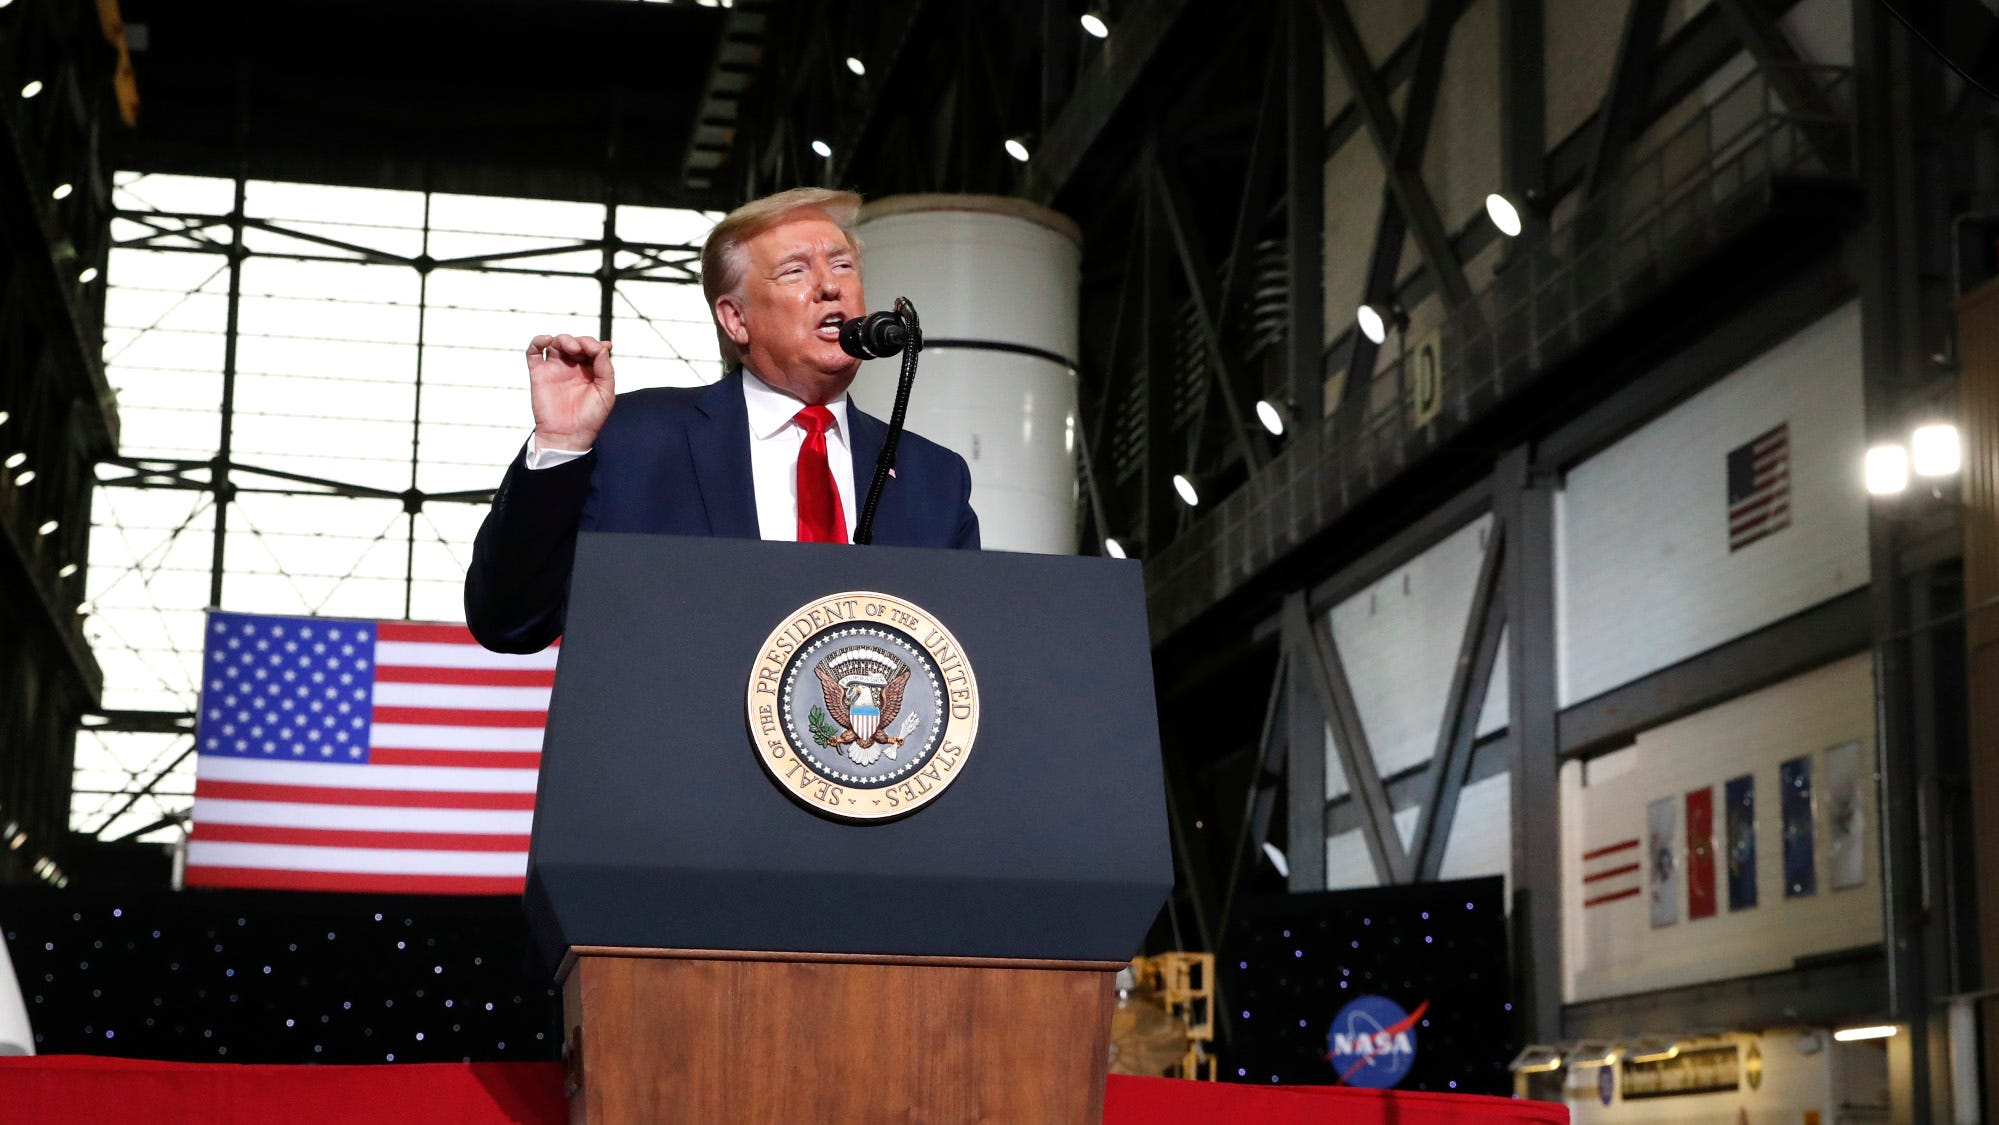 President Donald Trump during a post launch rally